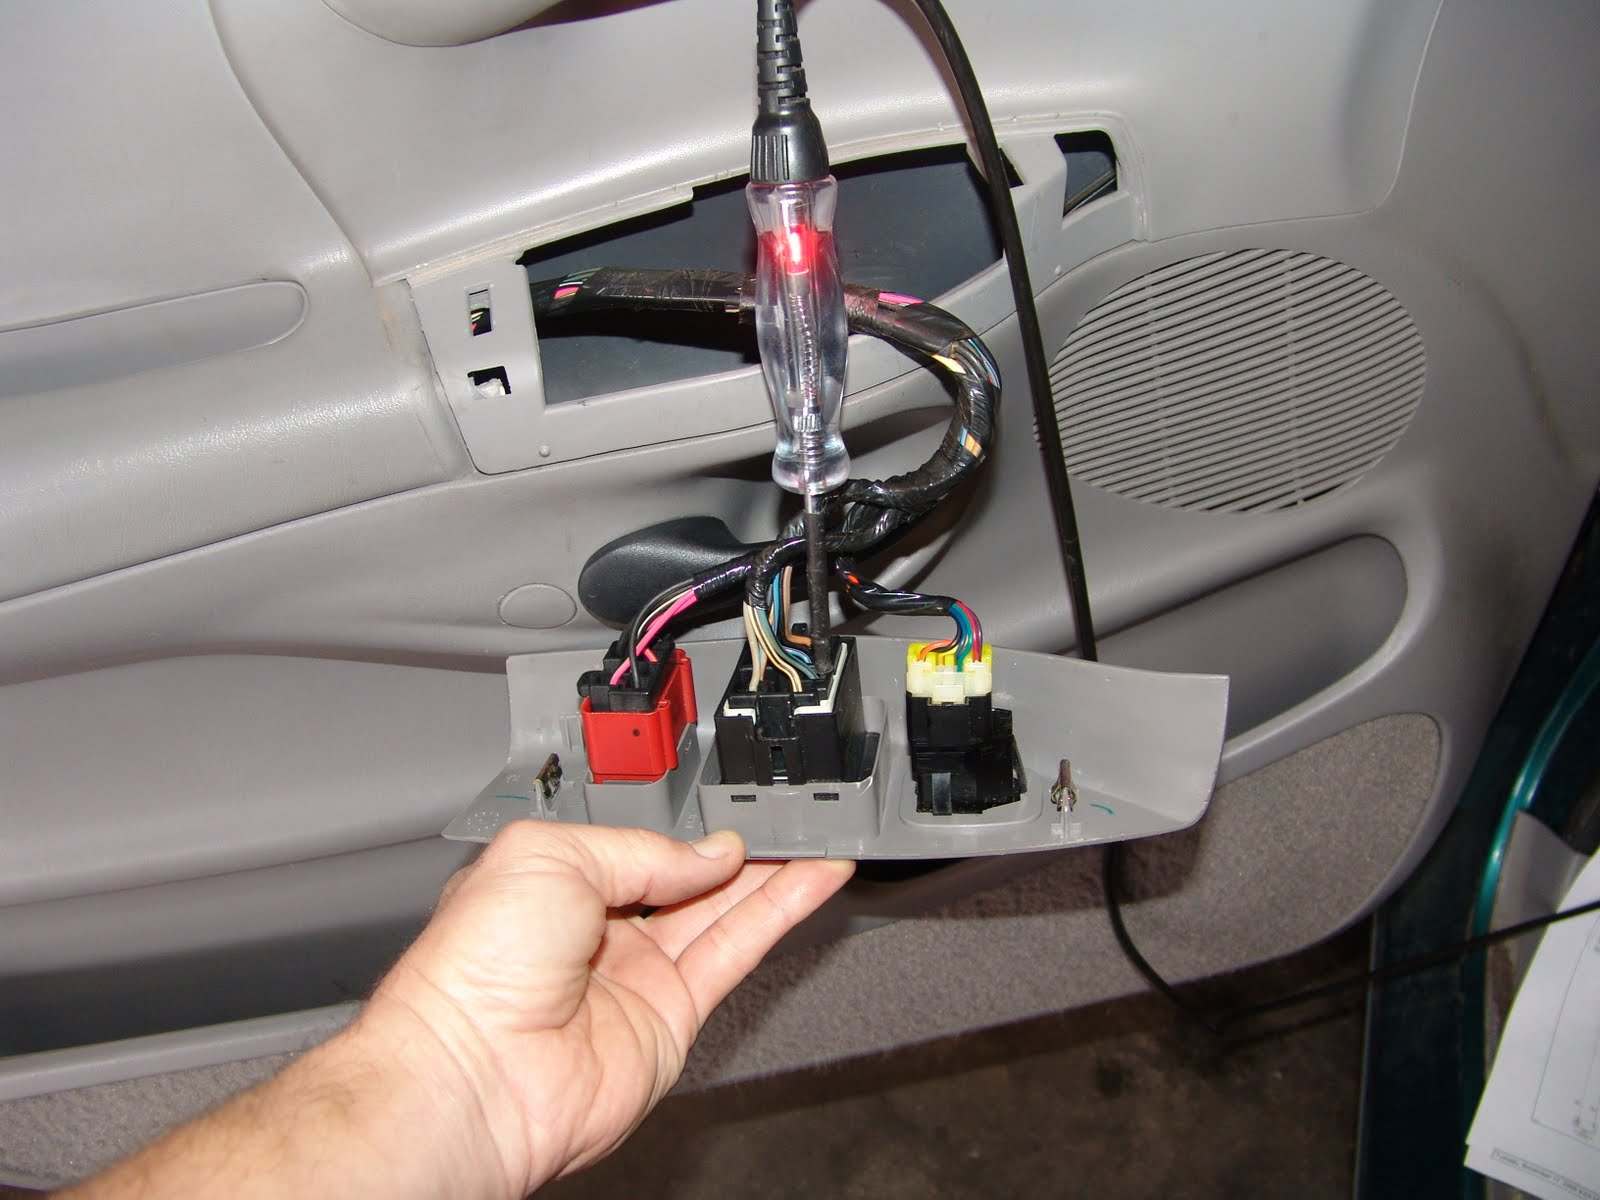 ... driver's power window switch. dsc02842.jpg